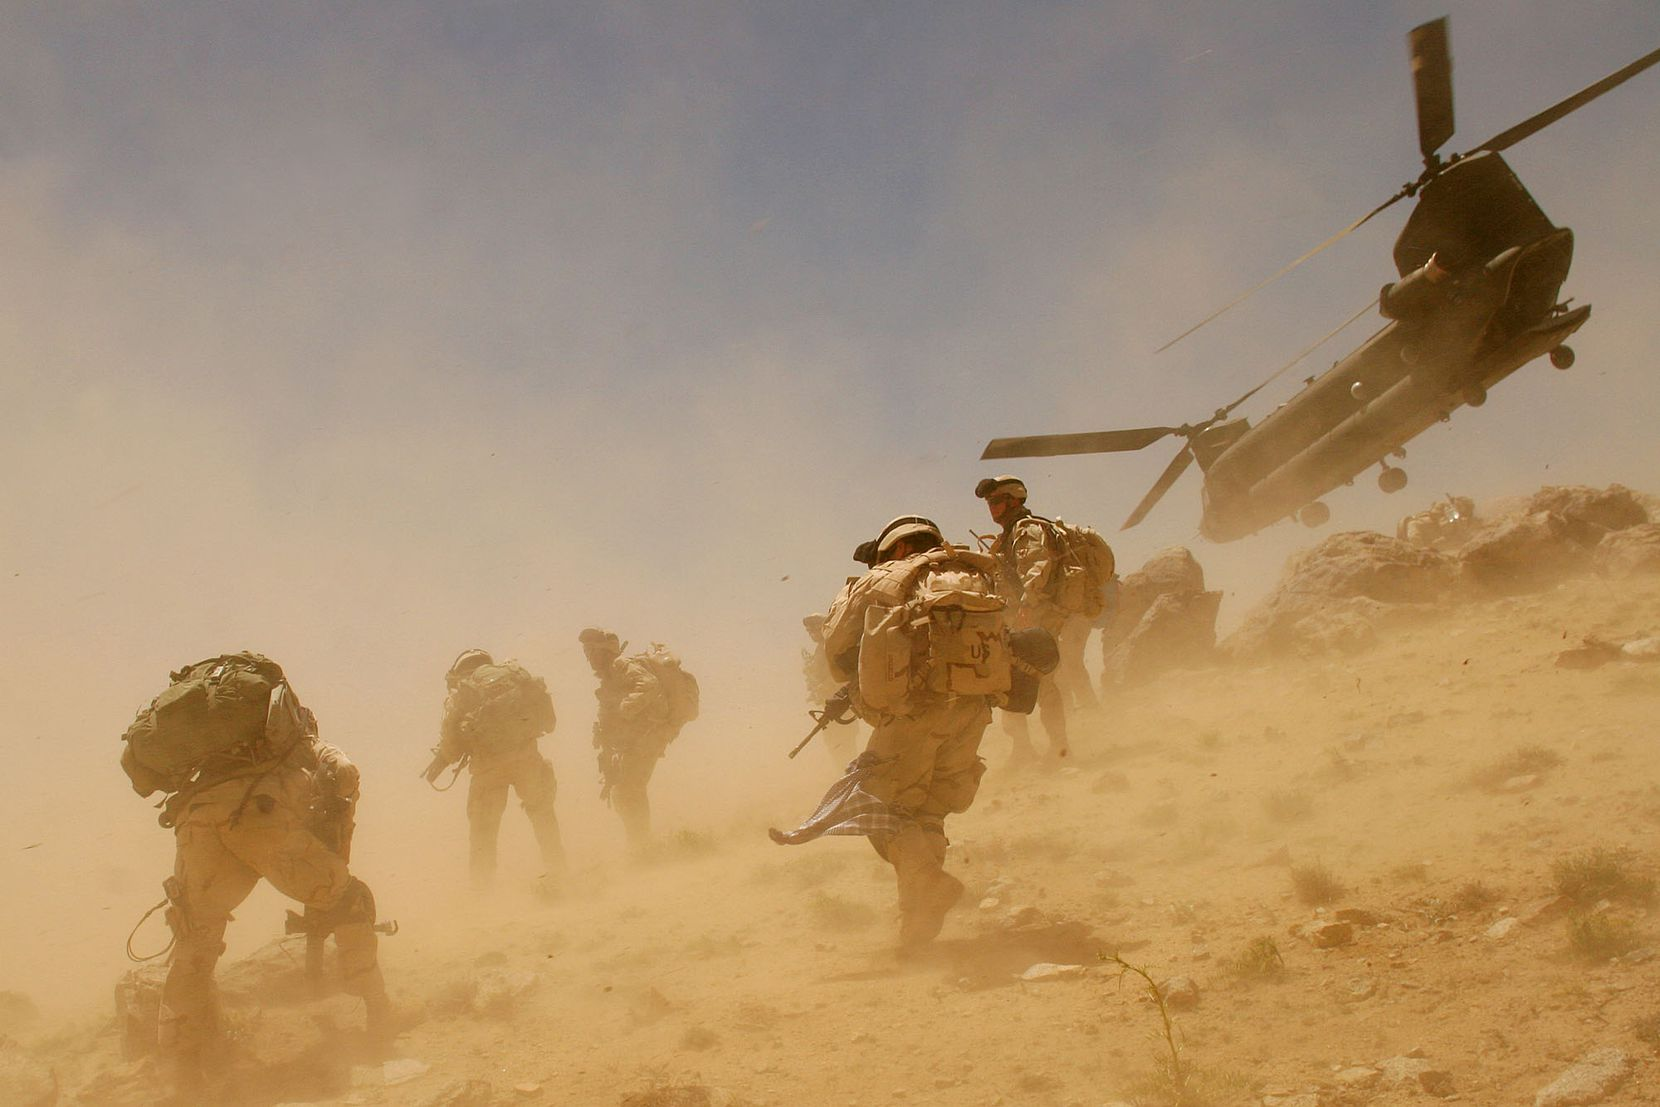 A CH-47 Chinook helicopter takes off after dropping soldiers in Zabul province in Afghanistan